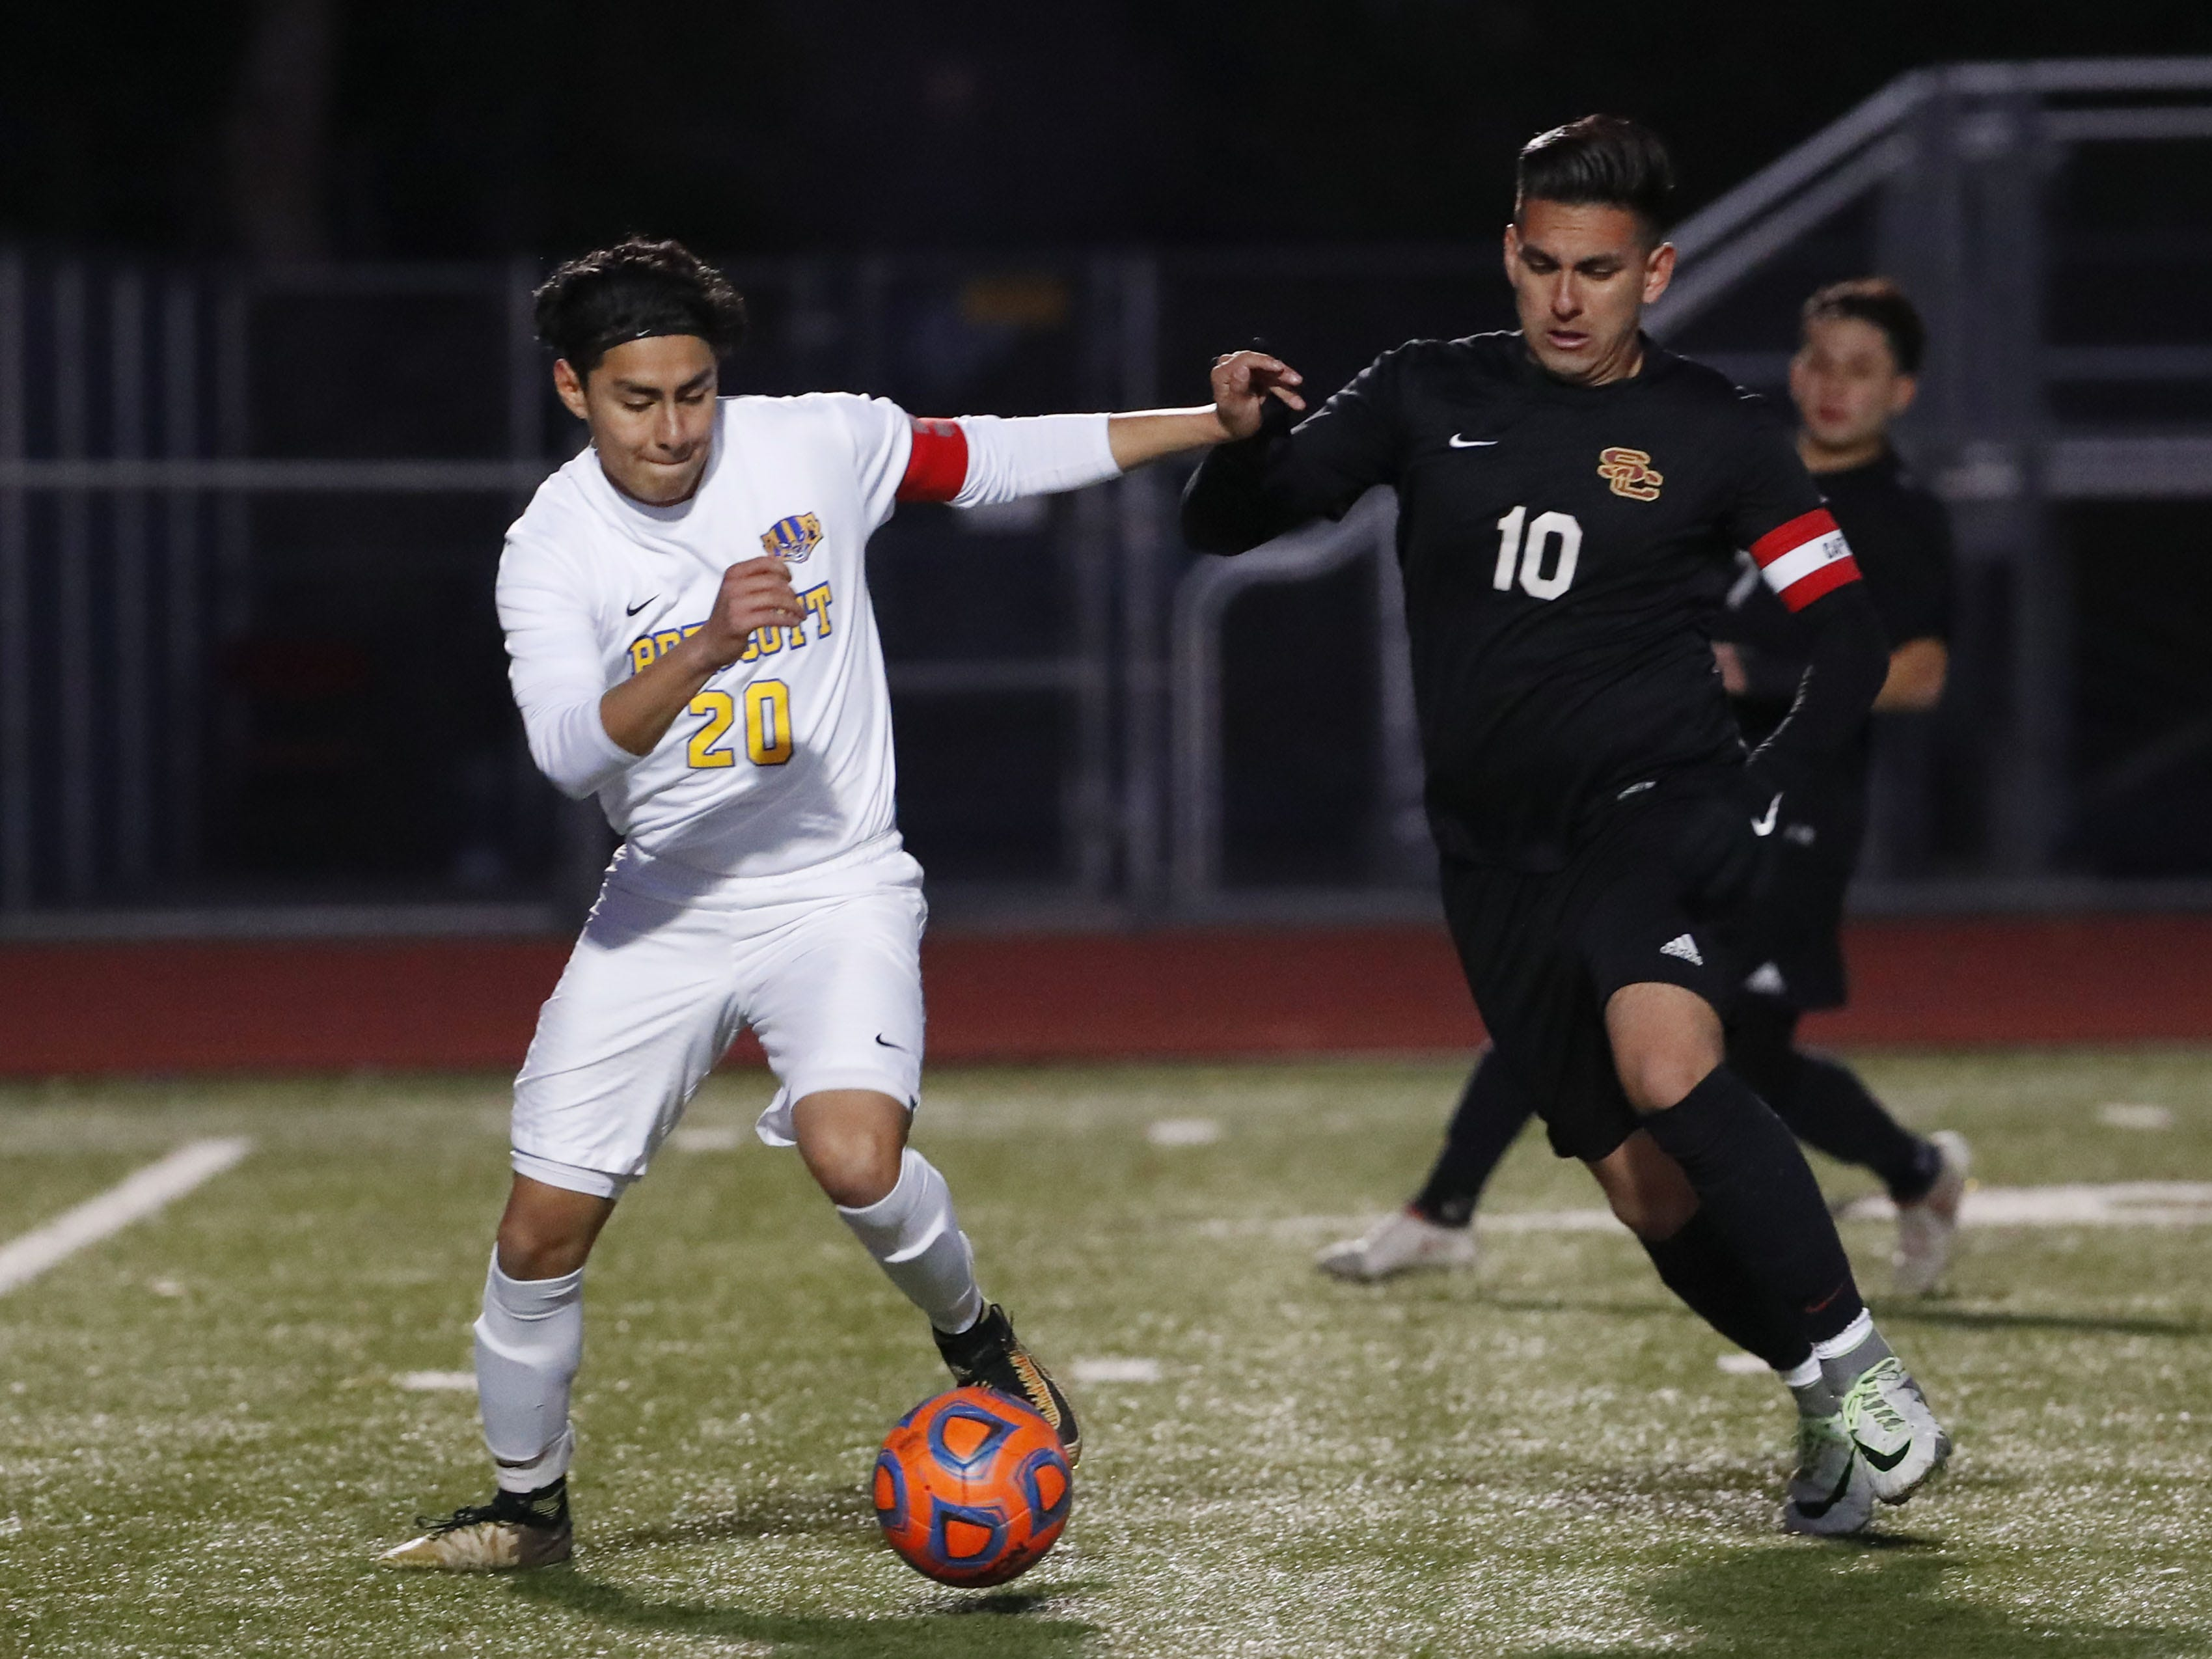 Prescott's Carlos Rivera (20) battles with Salpointe's Alfonso Cabrera (10) during the Boys 4A State Championship soccer game in Gilbert Feb. 19, 2019.